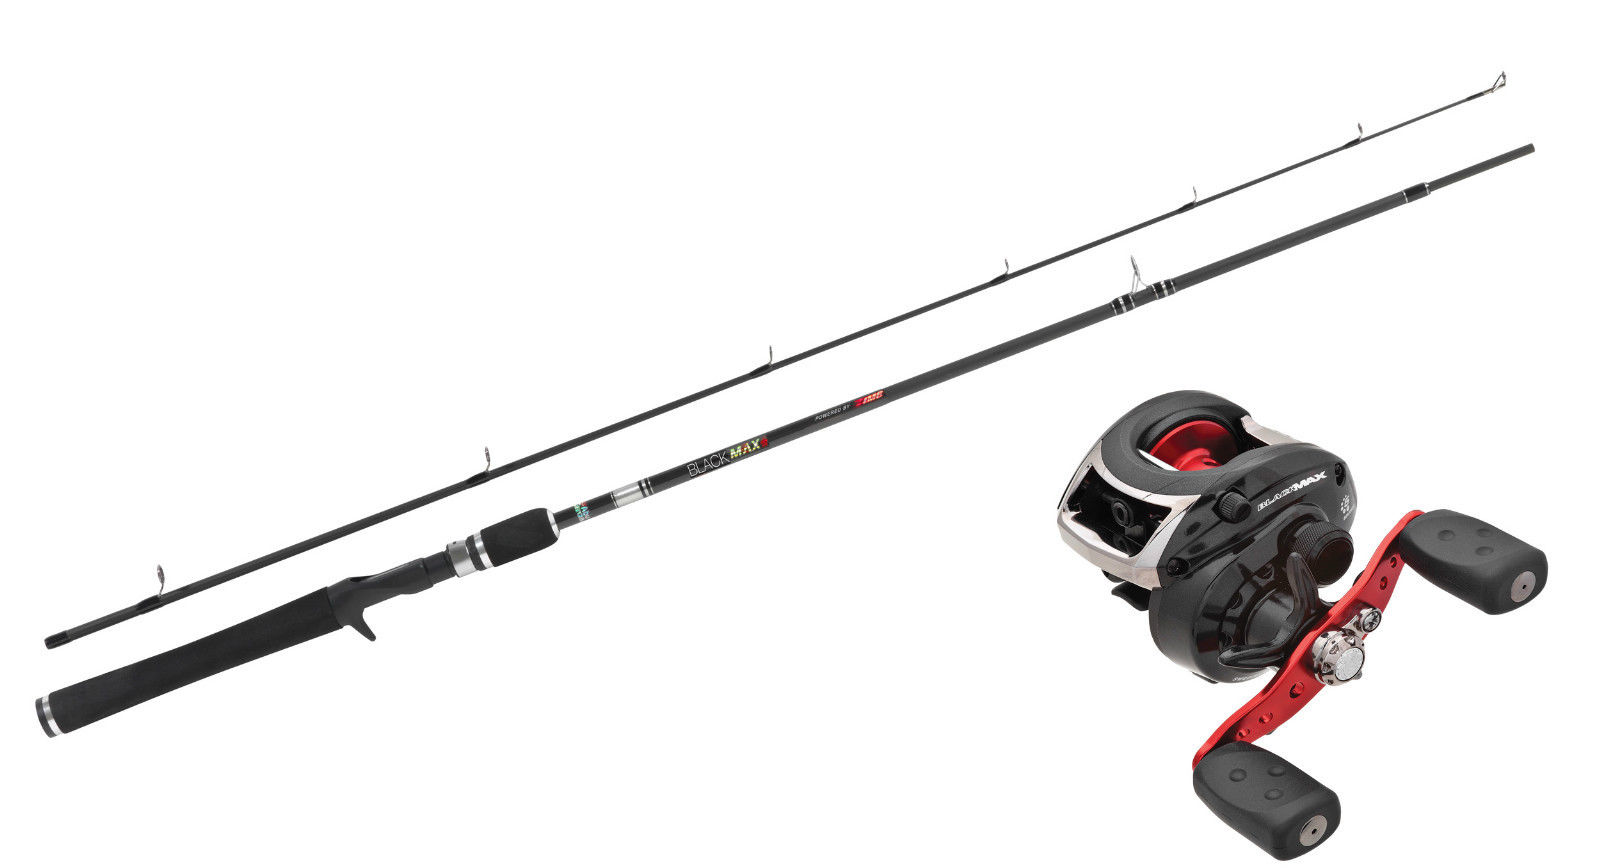 Abu garcia black max combo baitcast reel rod 1 97m 10 for Left handed fishing pole